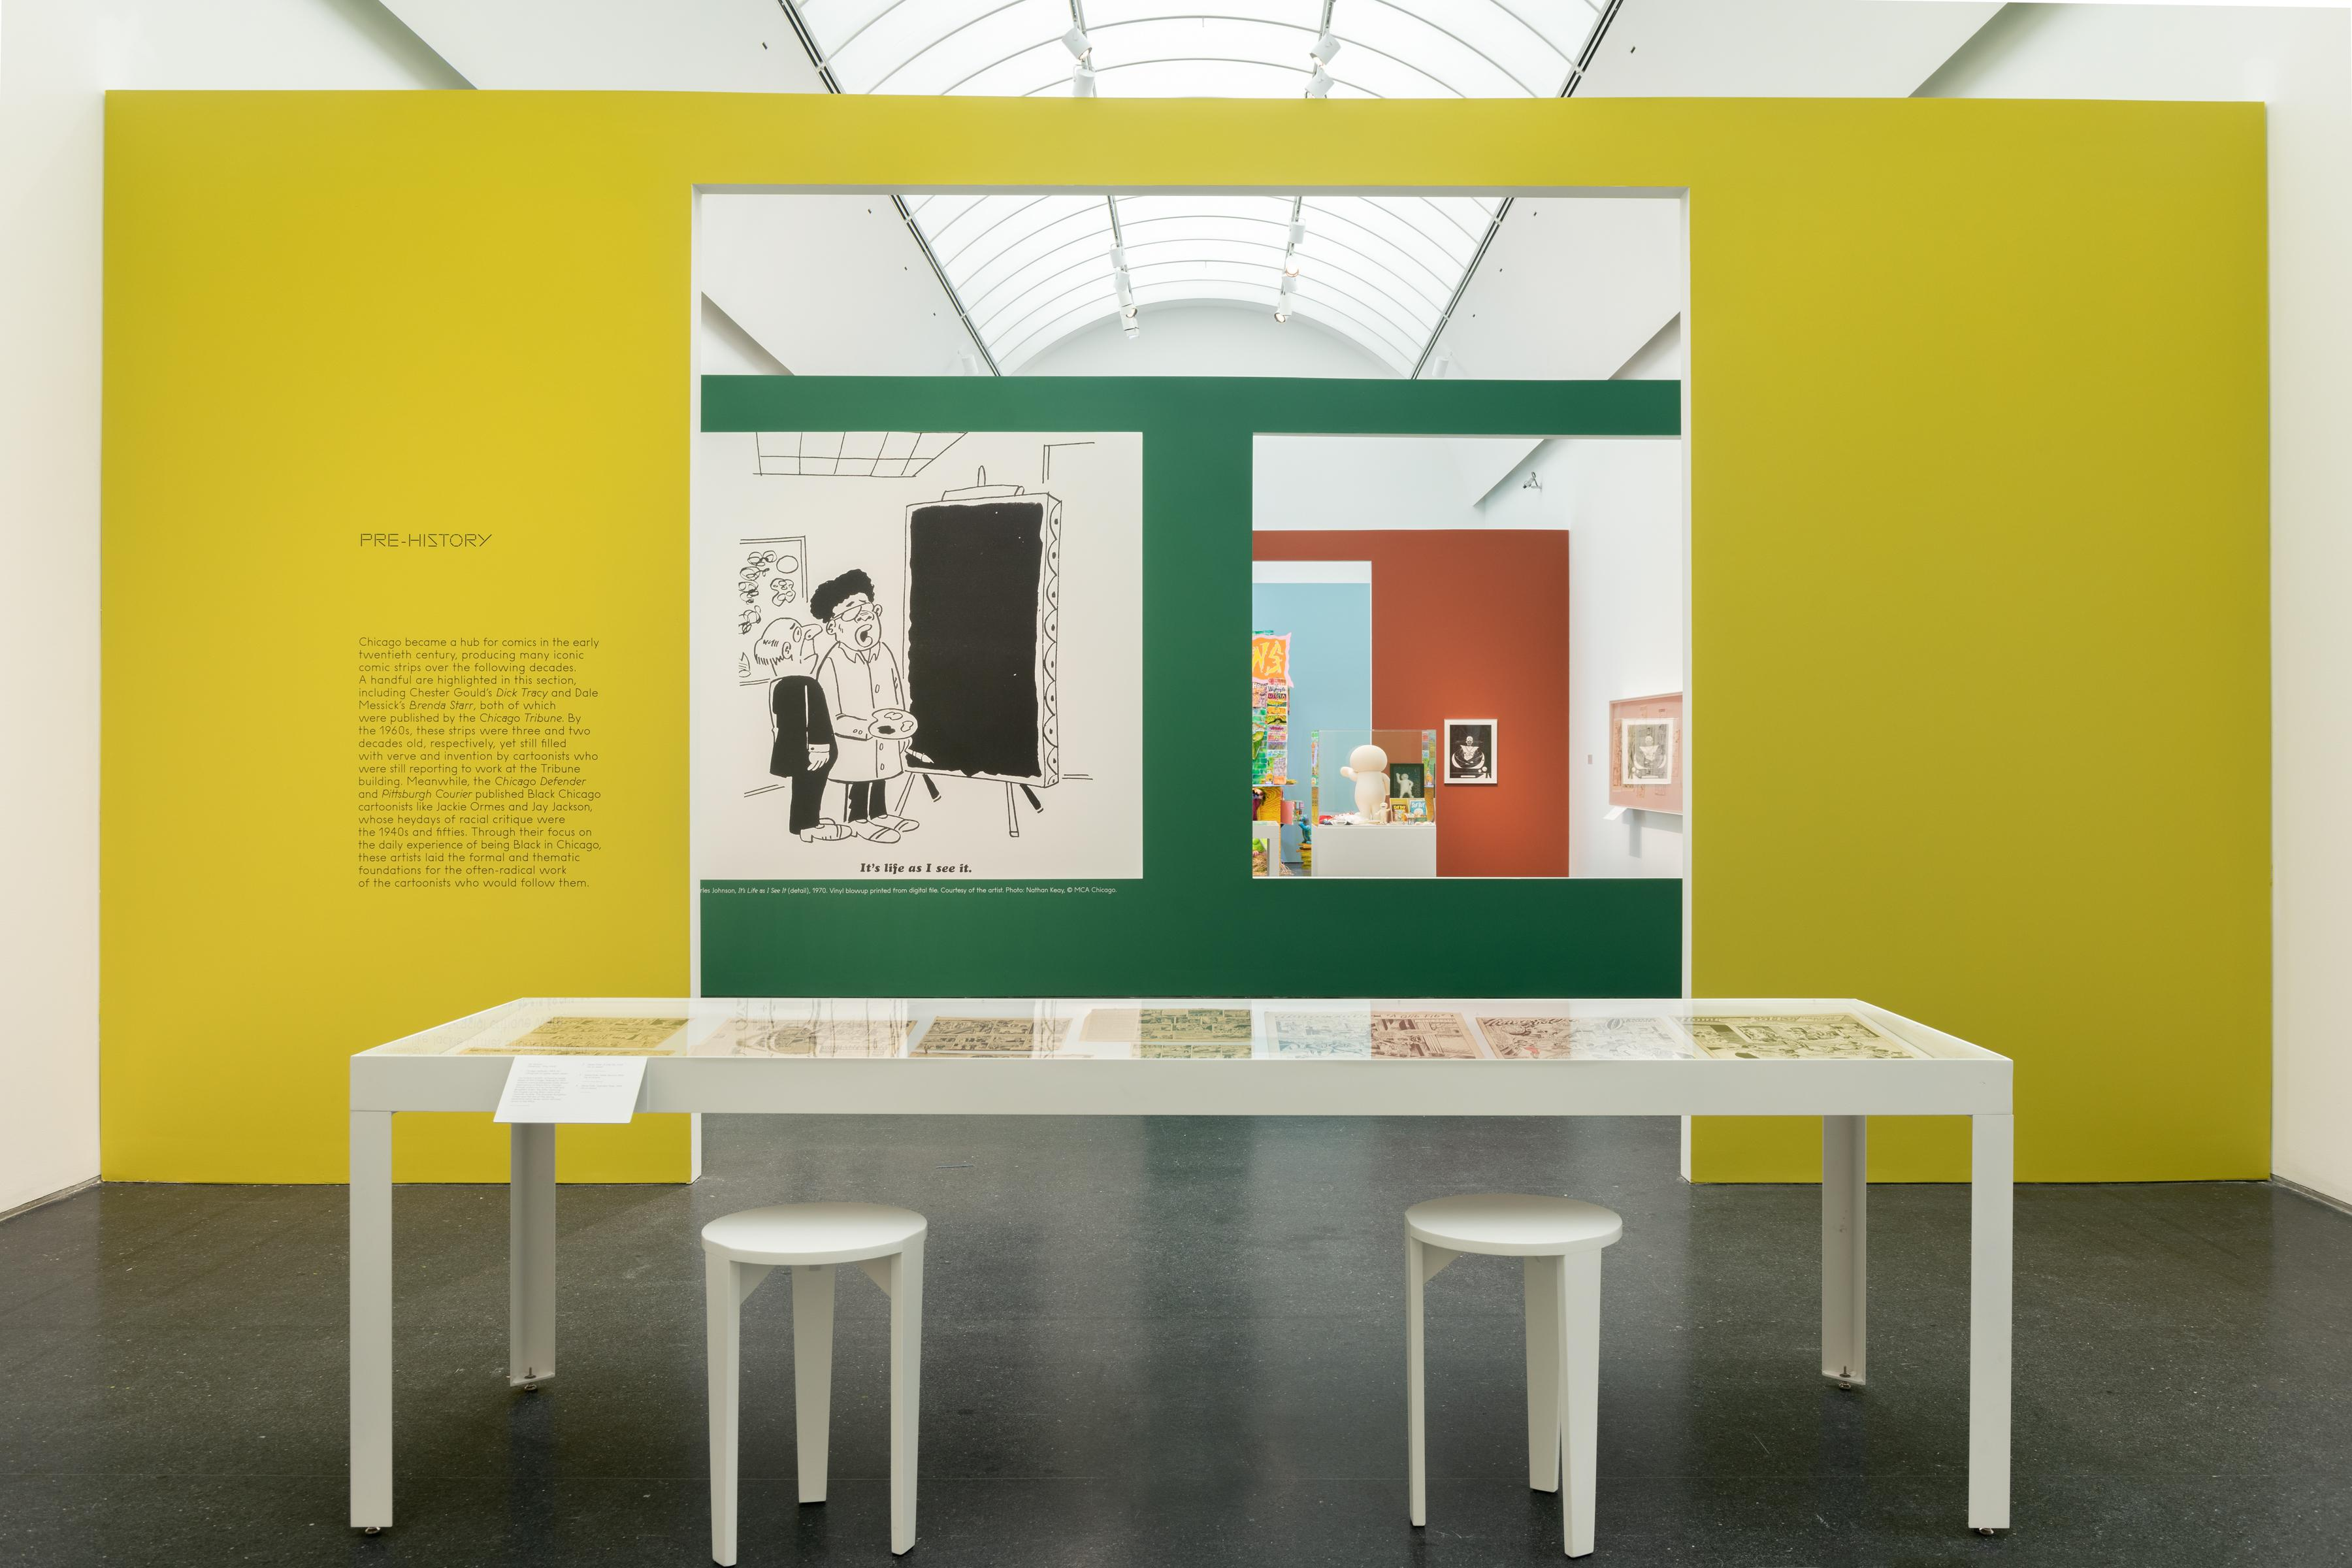 Exhibition interior showing a large white table with in front of a yellow wall with a doorway in the middle